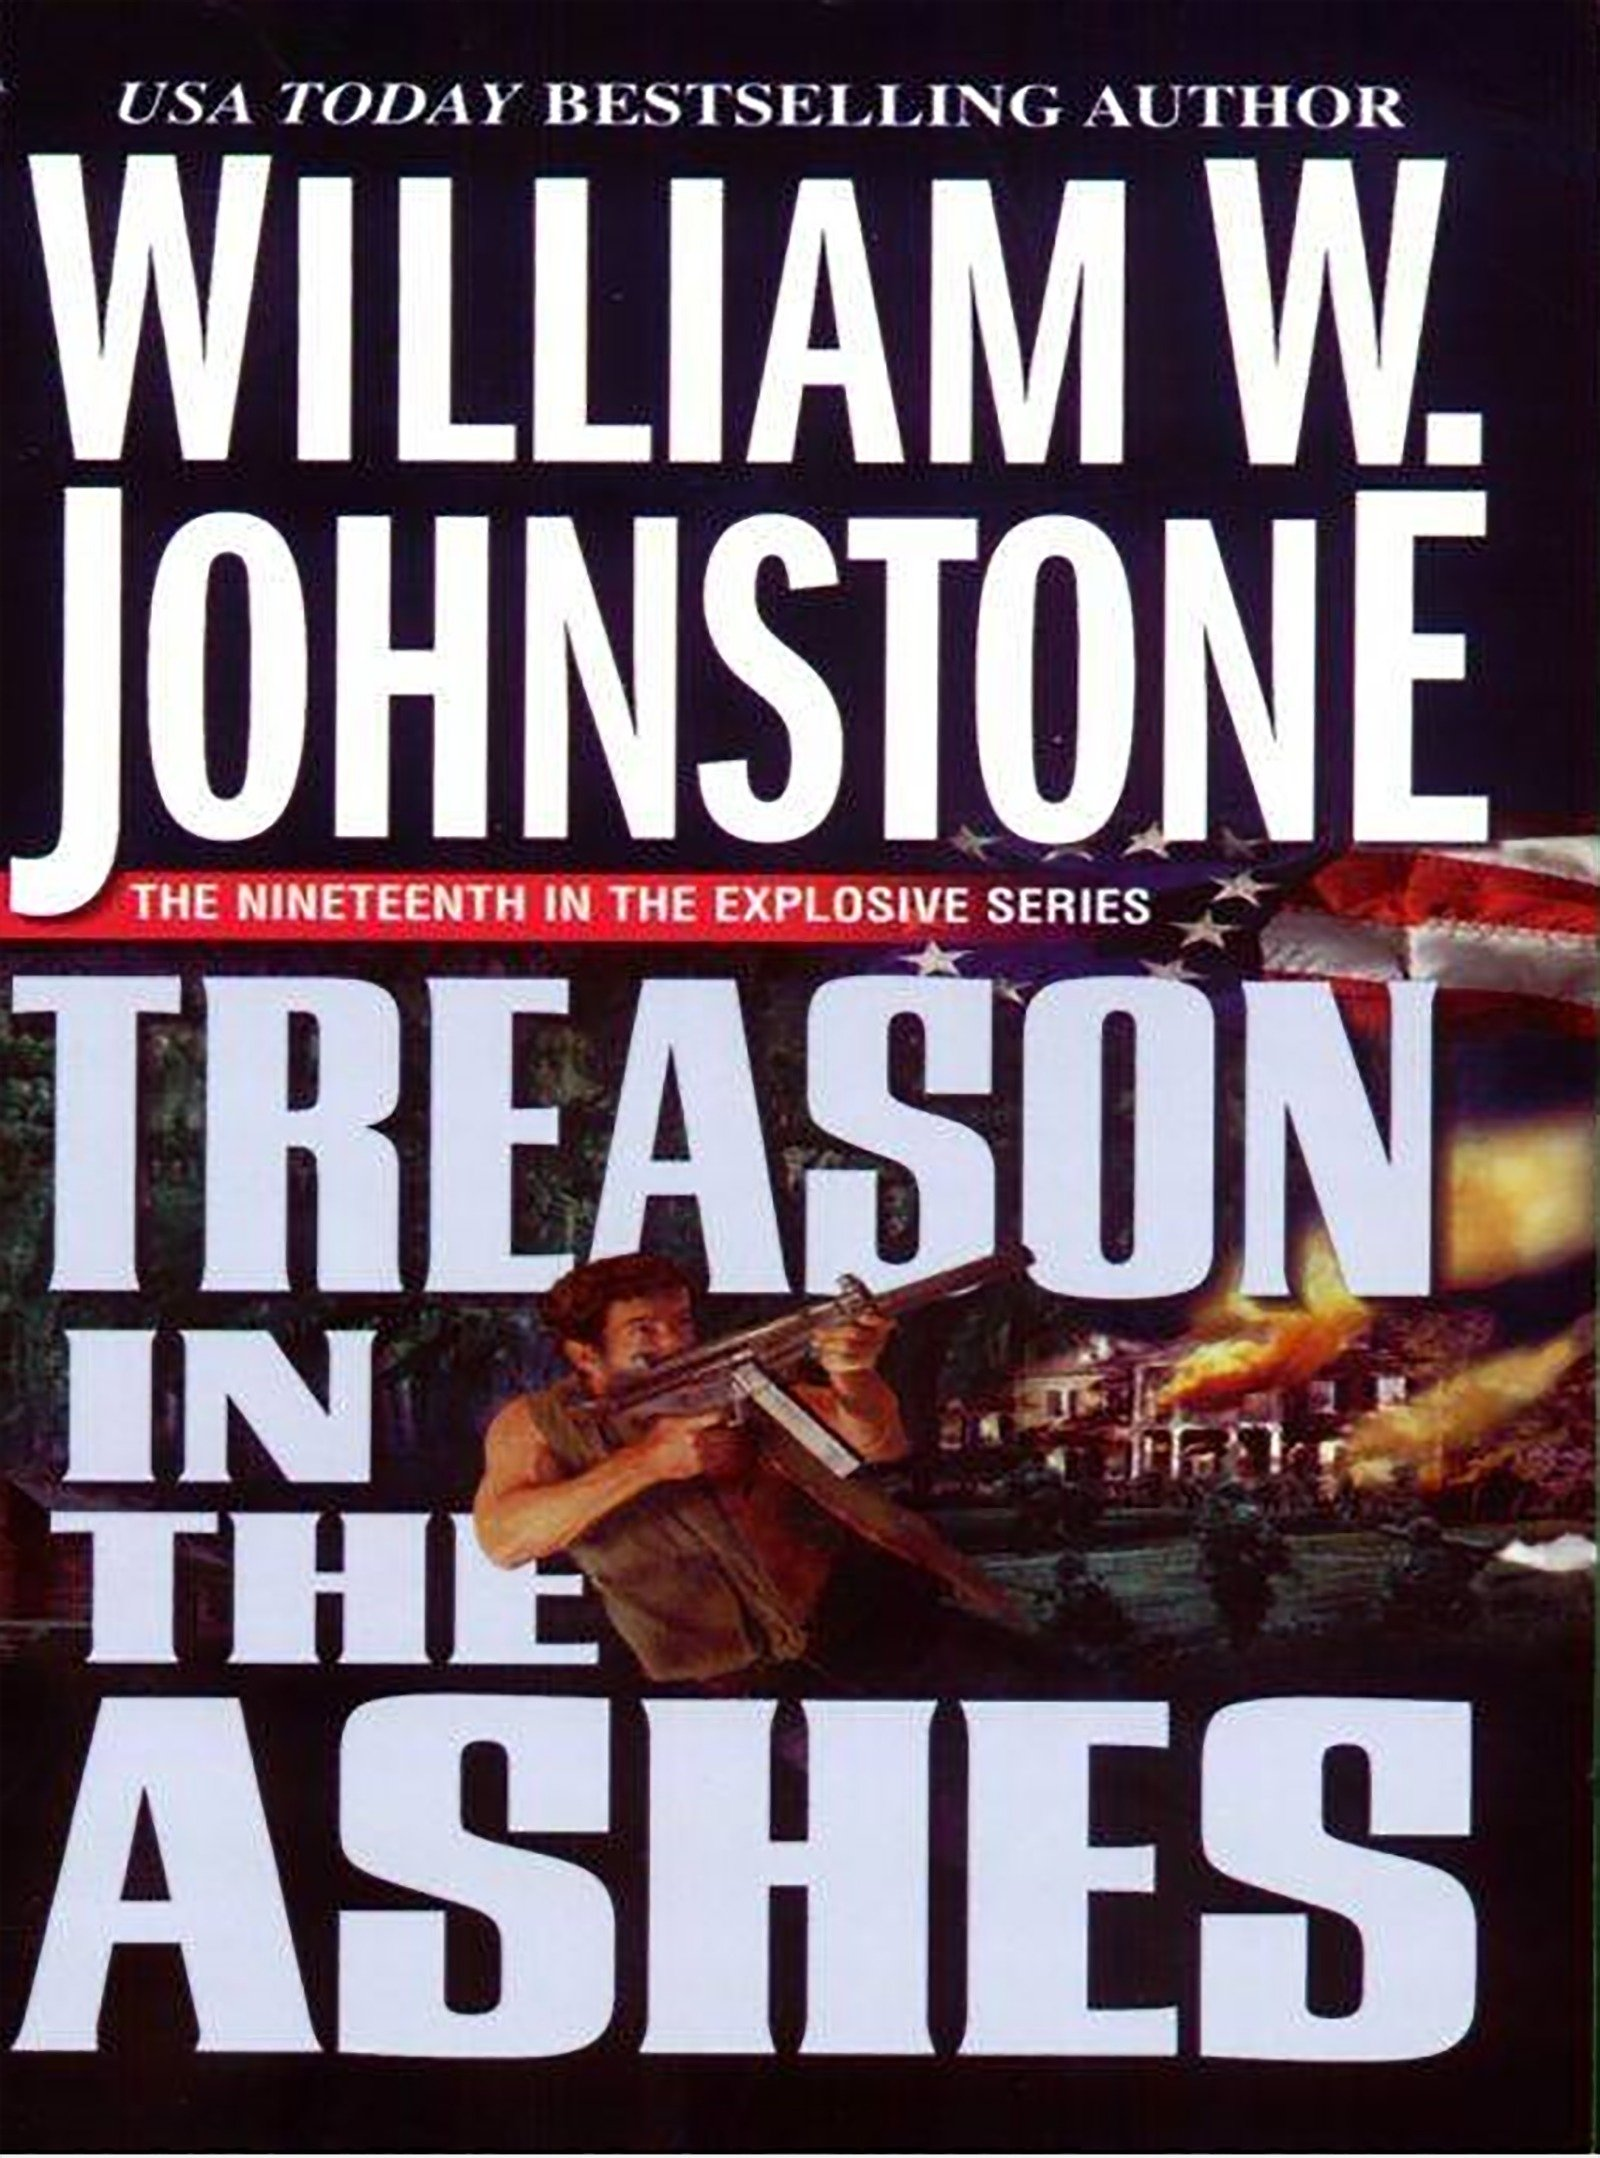 Amazon.com: Treason In The Ashes (9780786020775): William W. Johnstone:  Books